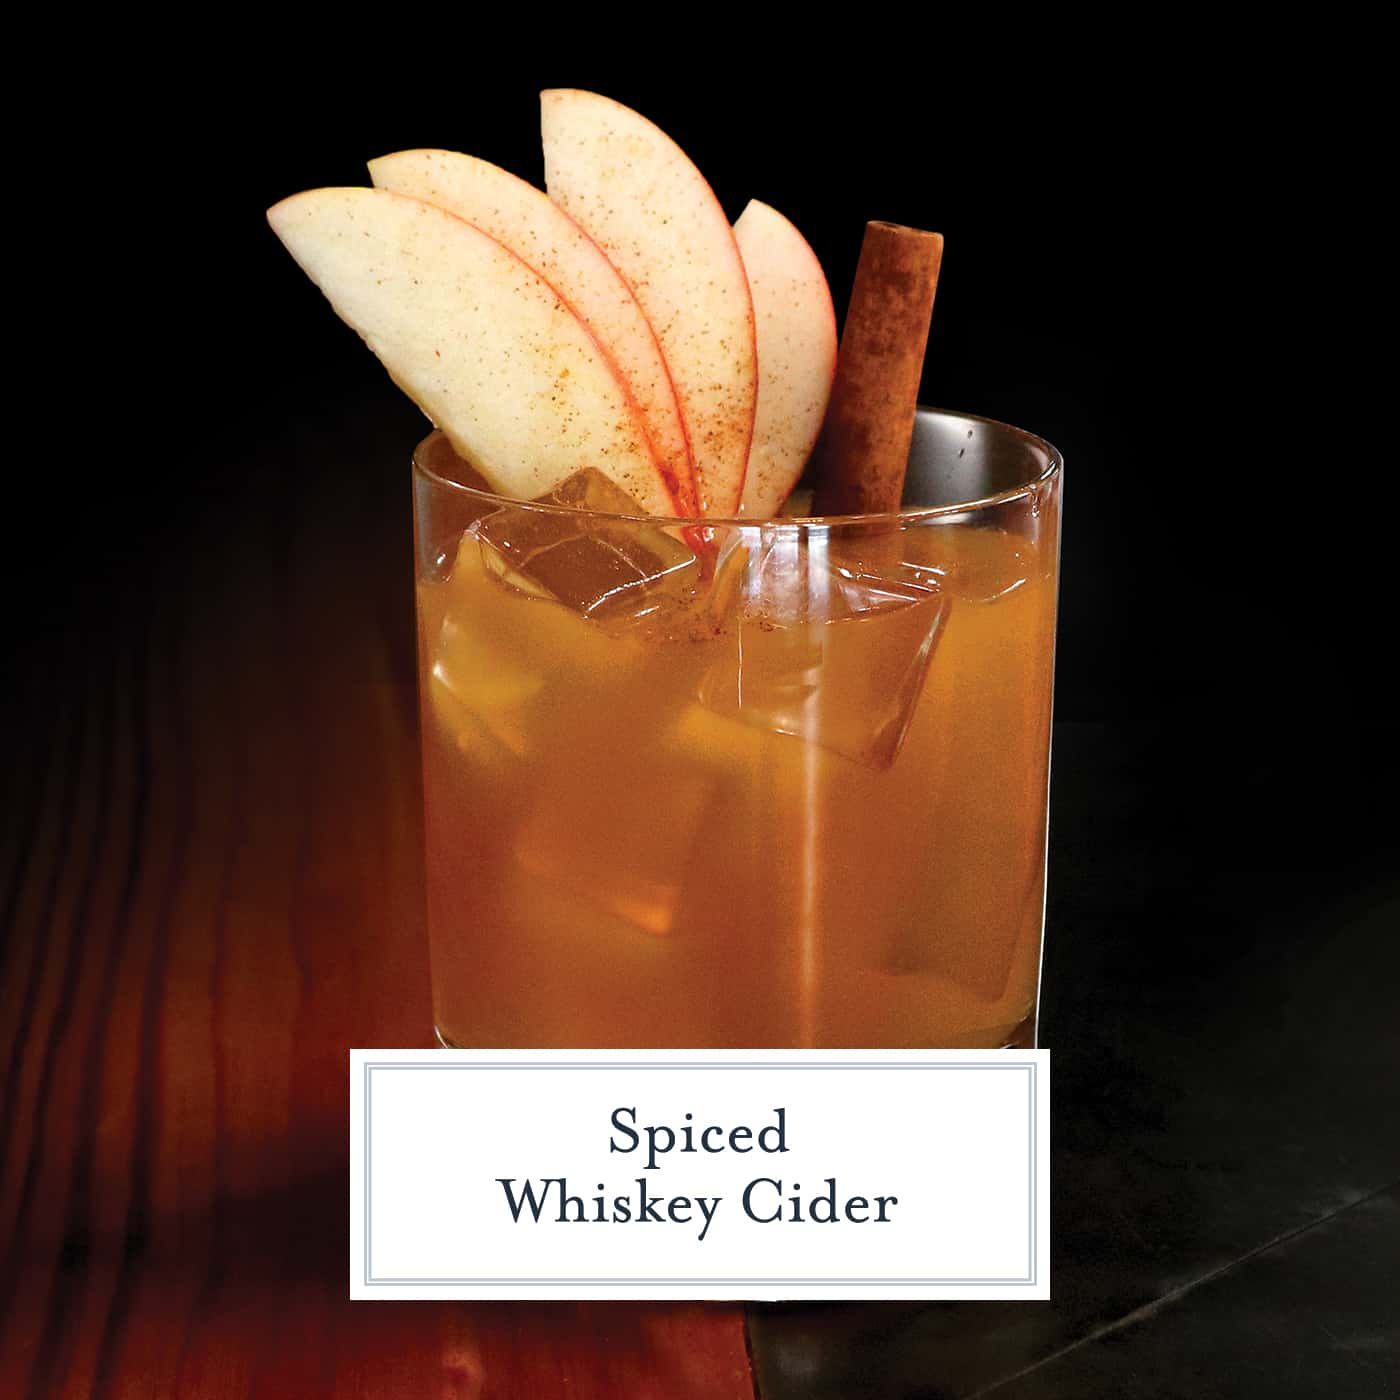 Spiced Whiskey Cider is the perfect fall cocktail using Sagamore Spirit rye whiskey, apple cider, lime juice and simple syrup. #whiskeycocktails www.savoryexperiments.com